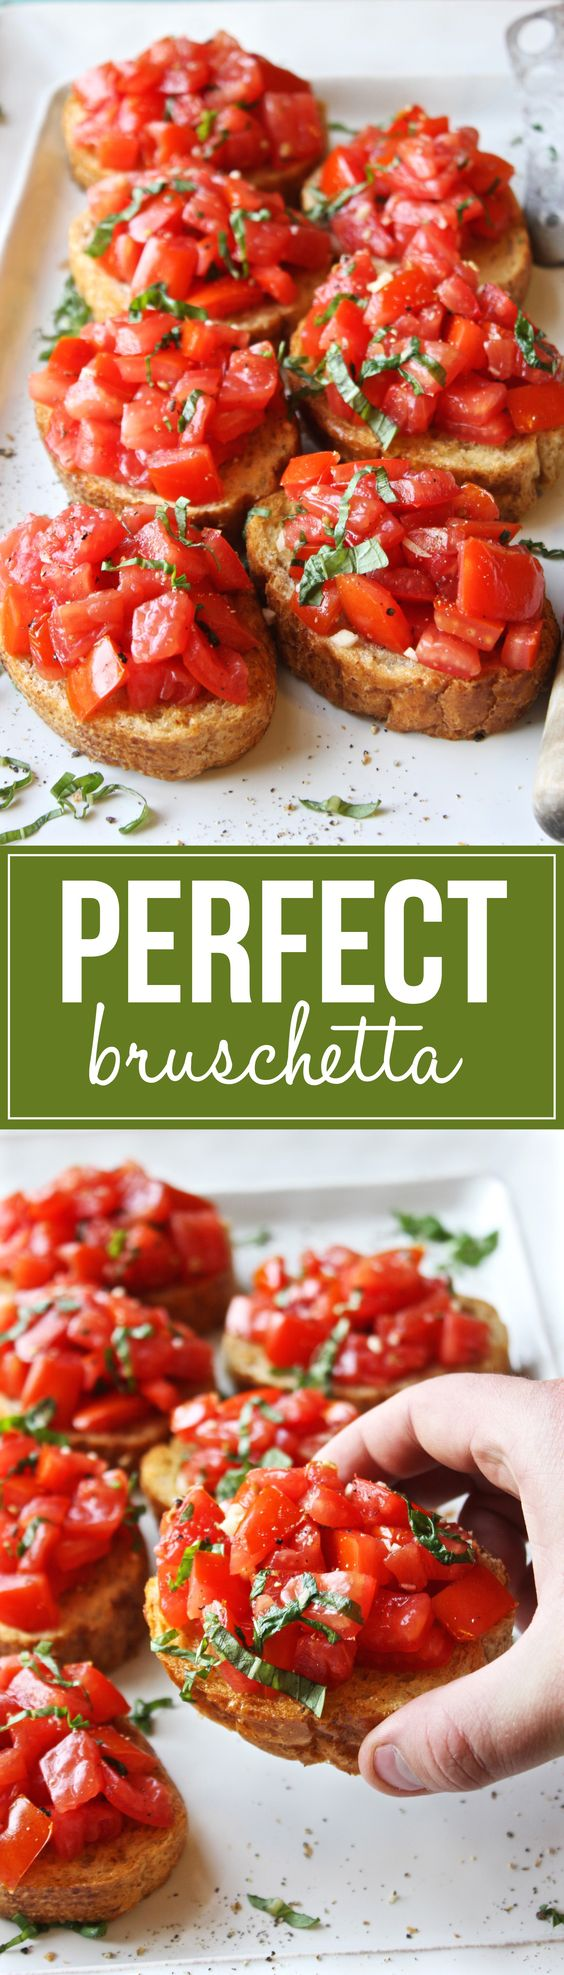 The Perfect Bruschetta.: